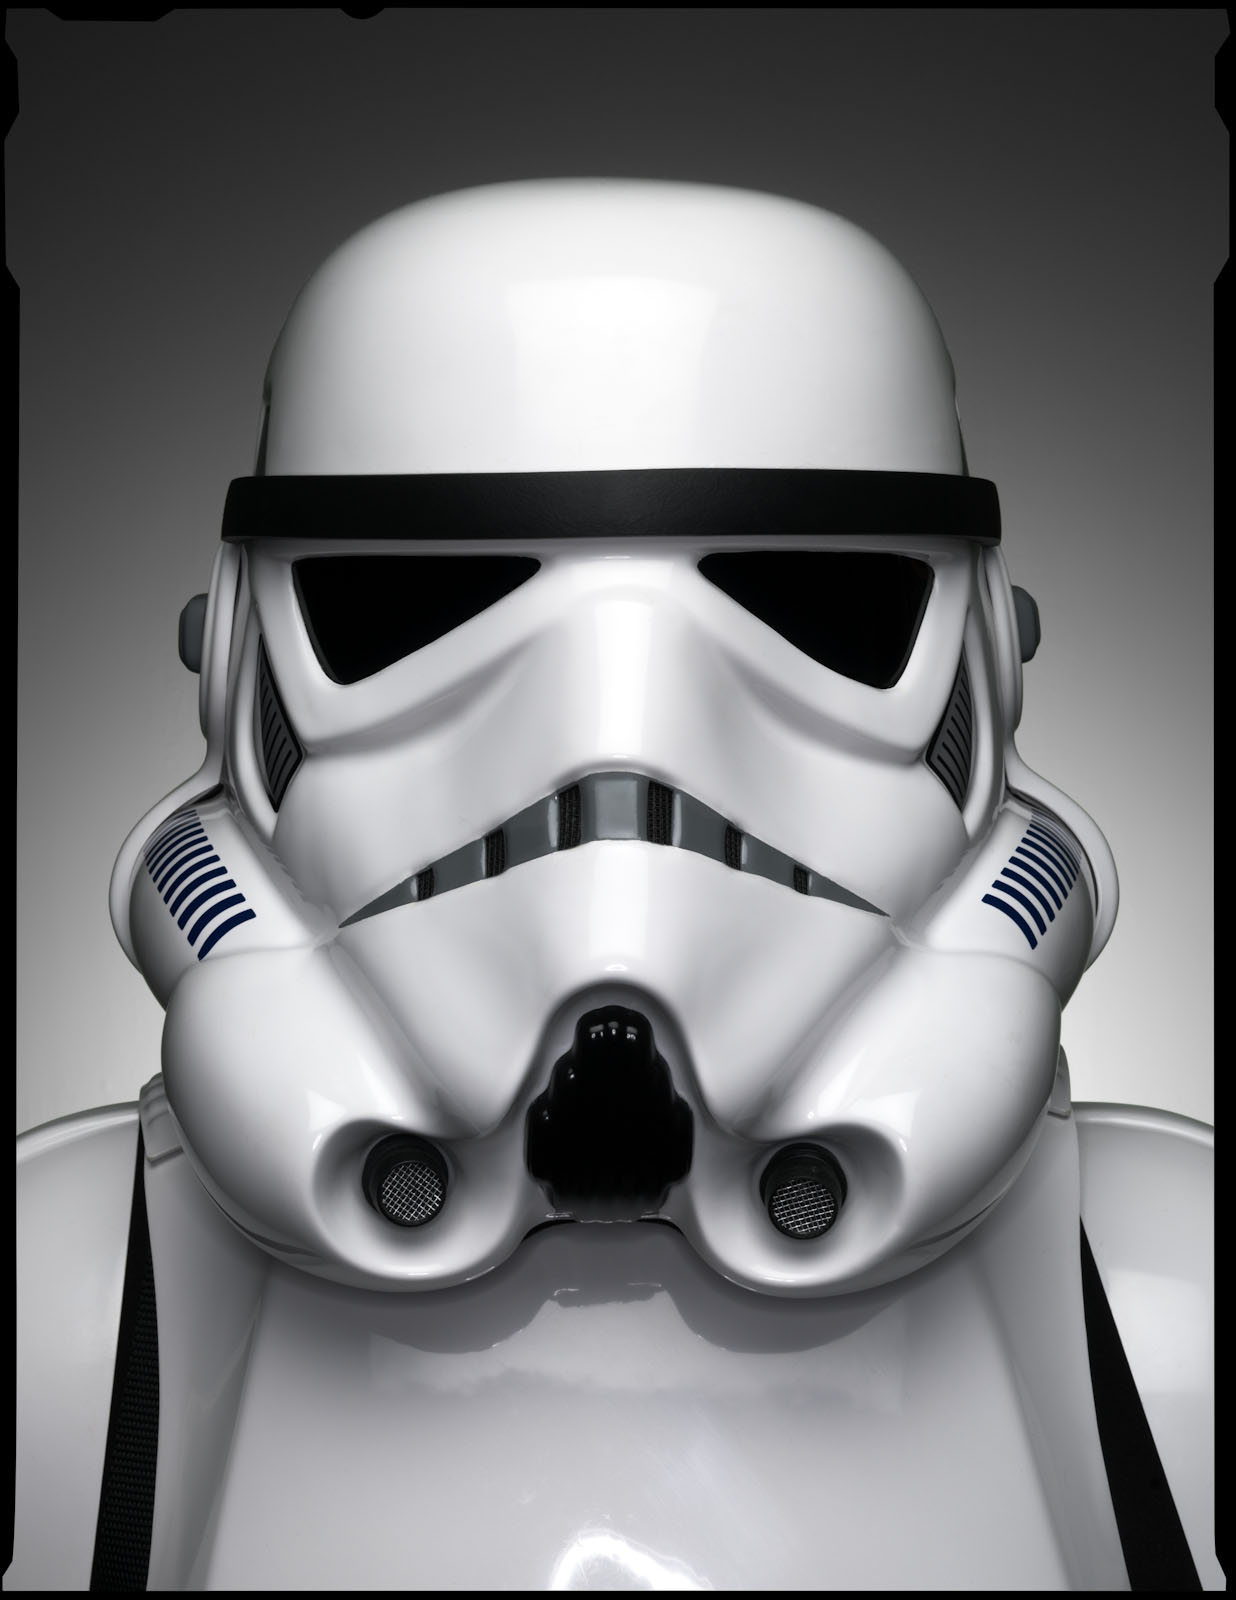 Imperial Stormtrooper - Death Star - Wired Magazine